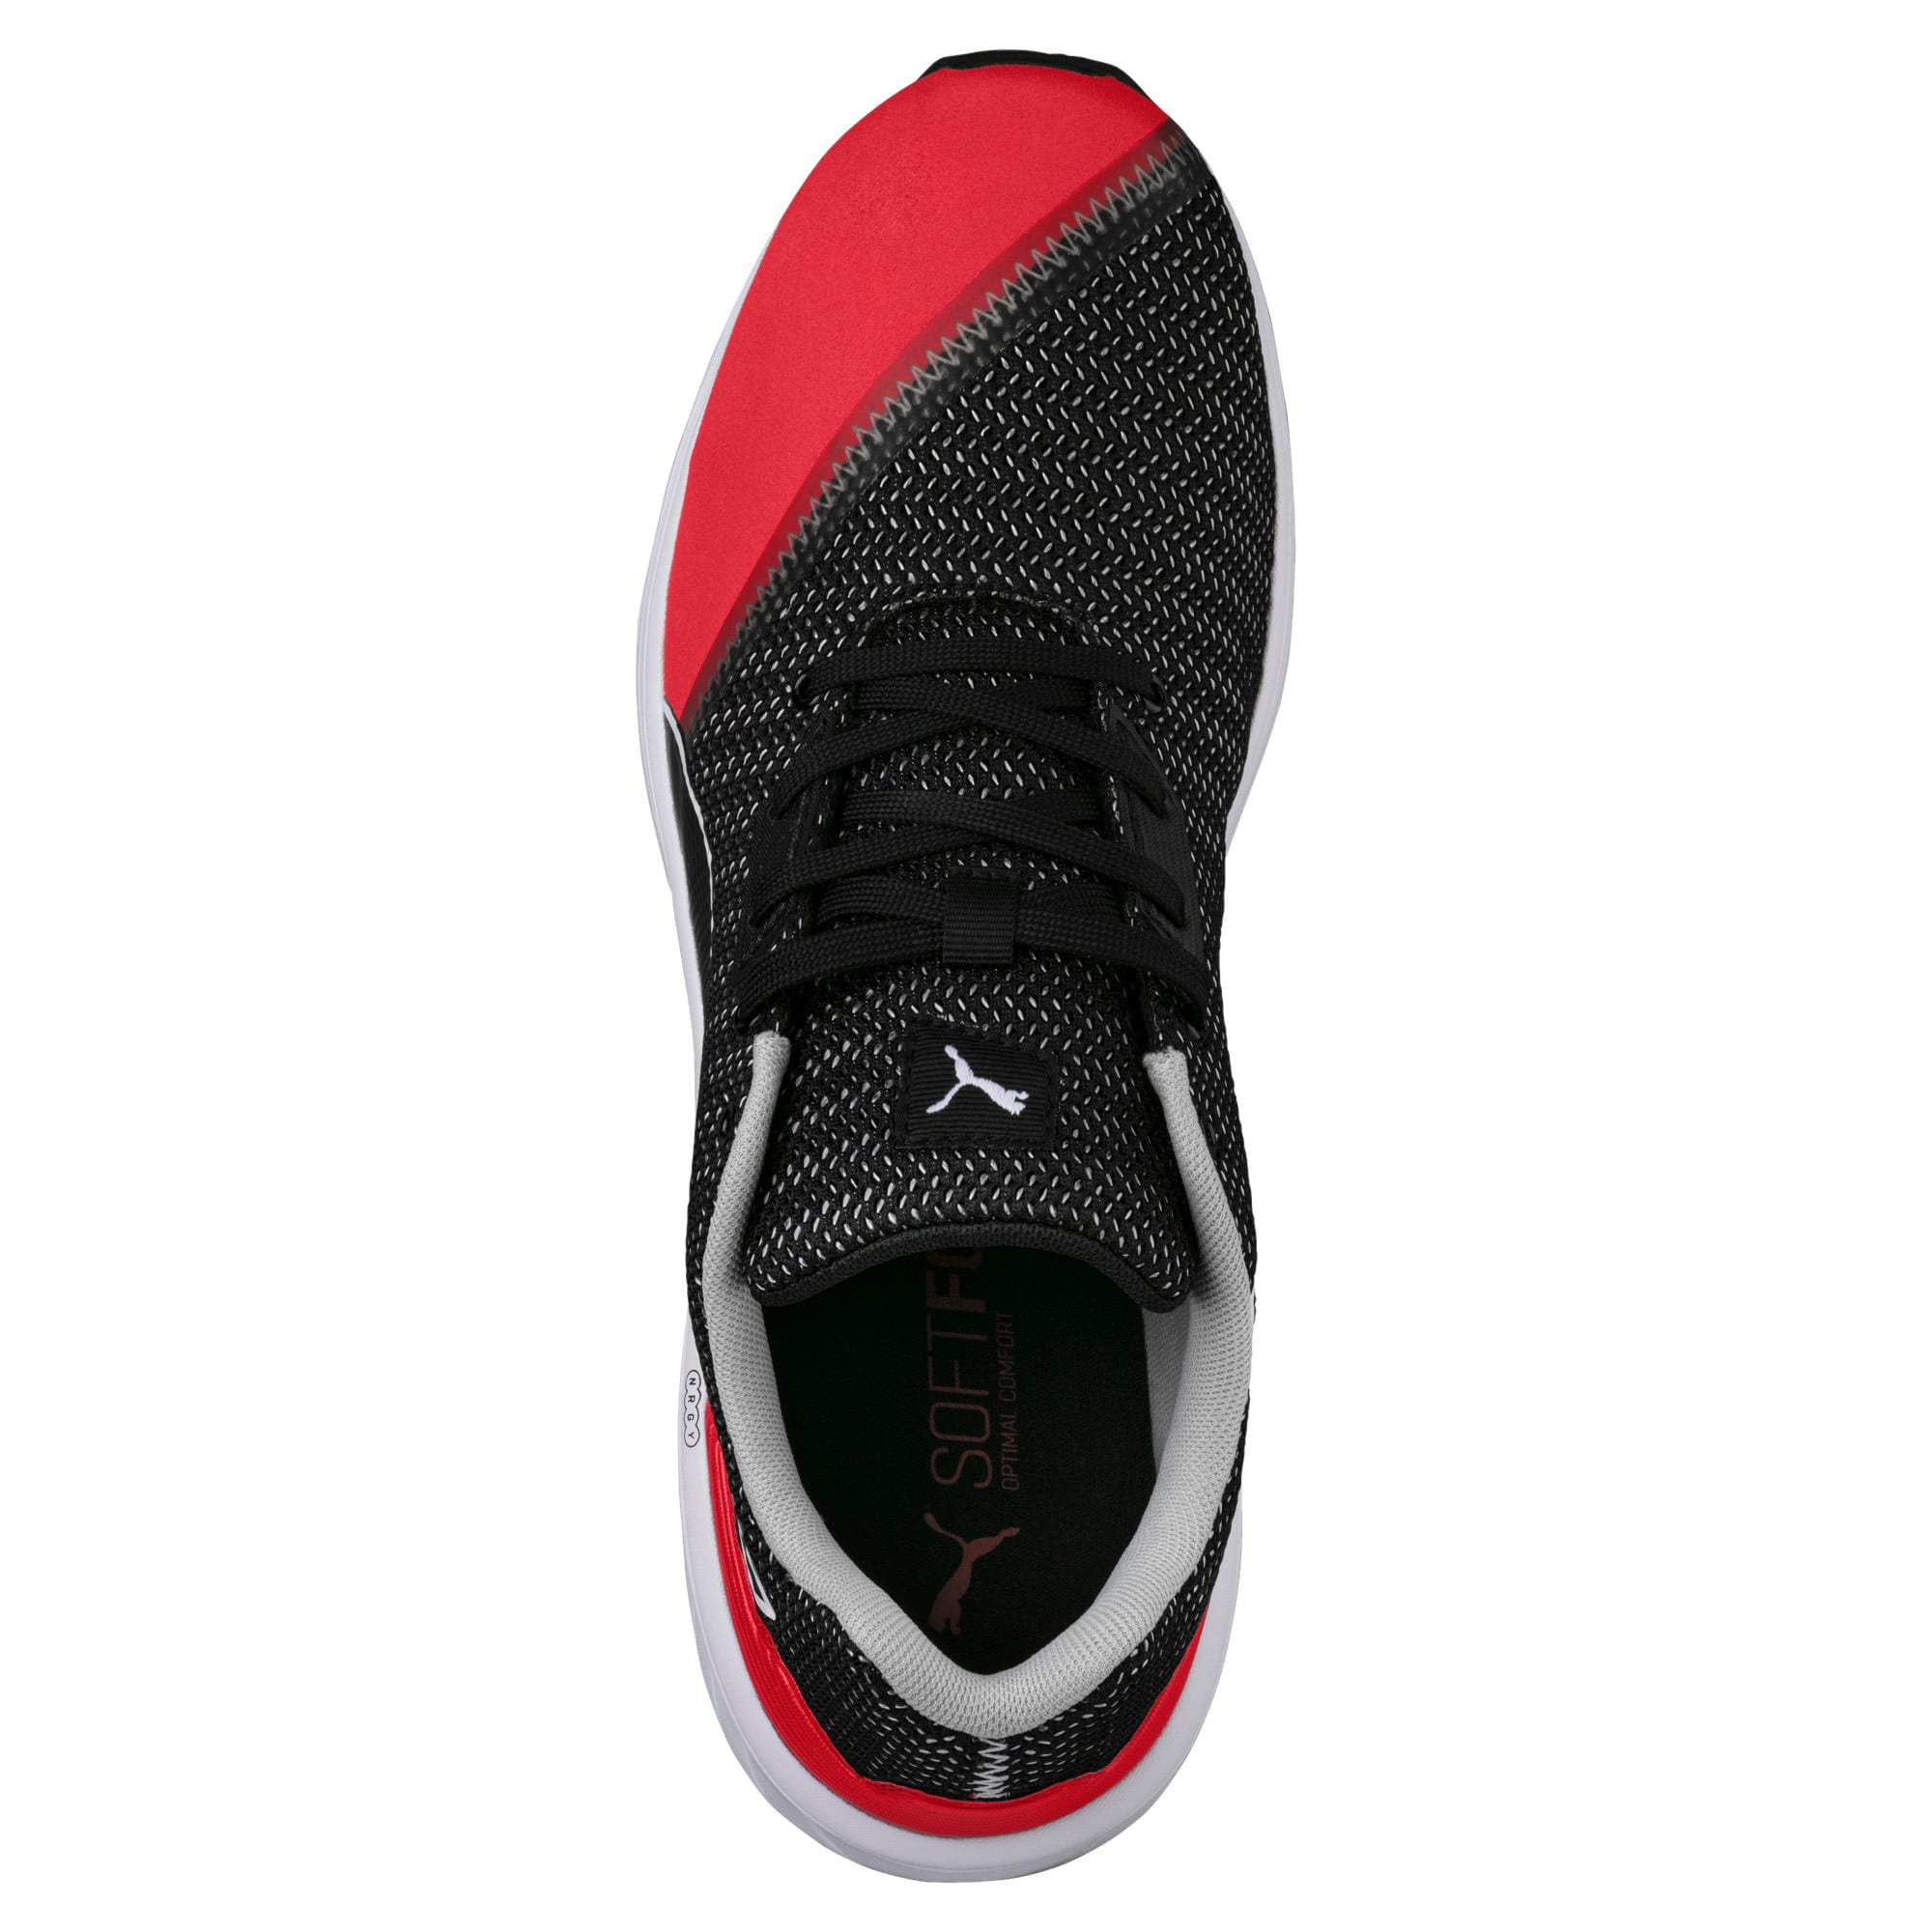 Thumbnail 5 of NRGY Resurge Puma Black-Puma White, Puma Blk-Ribbon Rd-Pma Wht, medium-IND